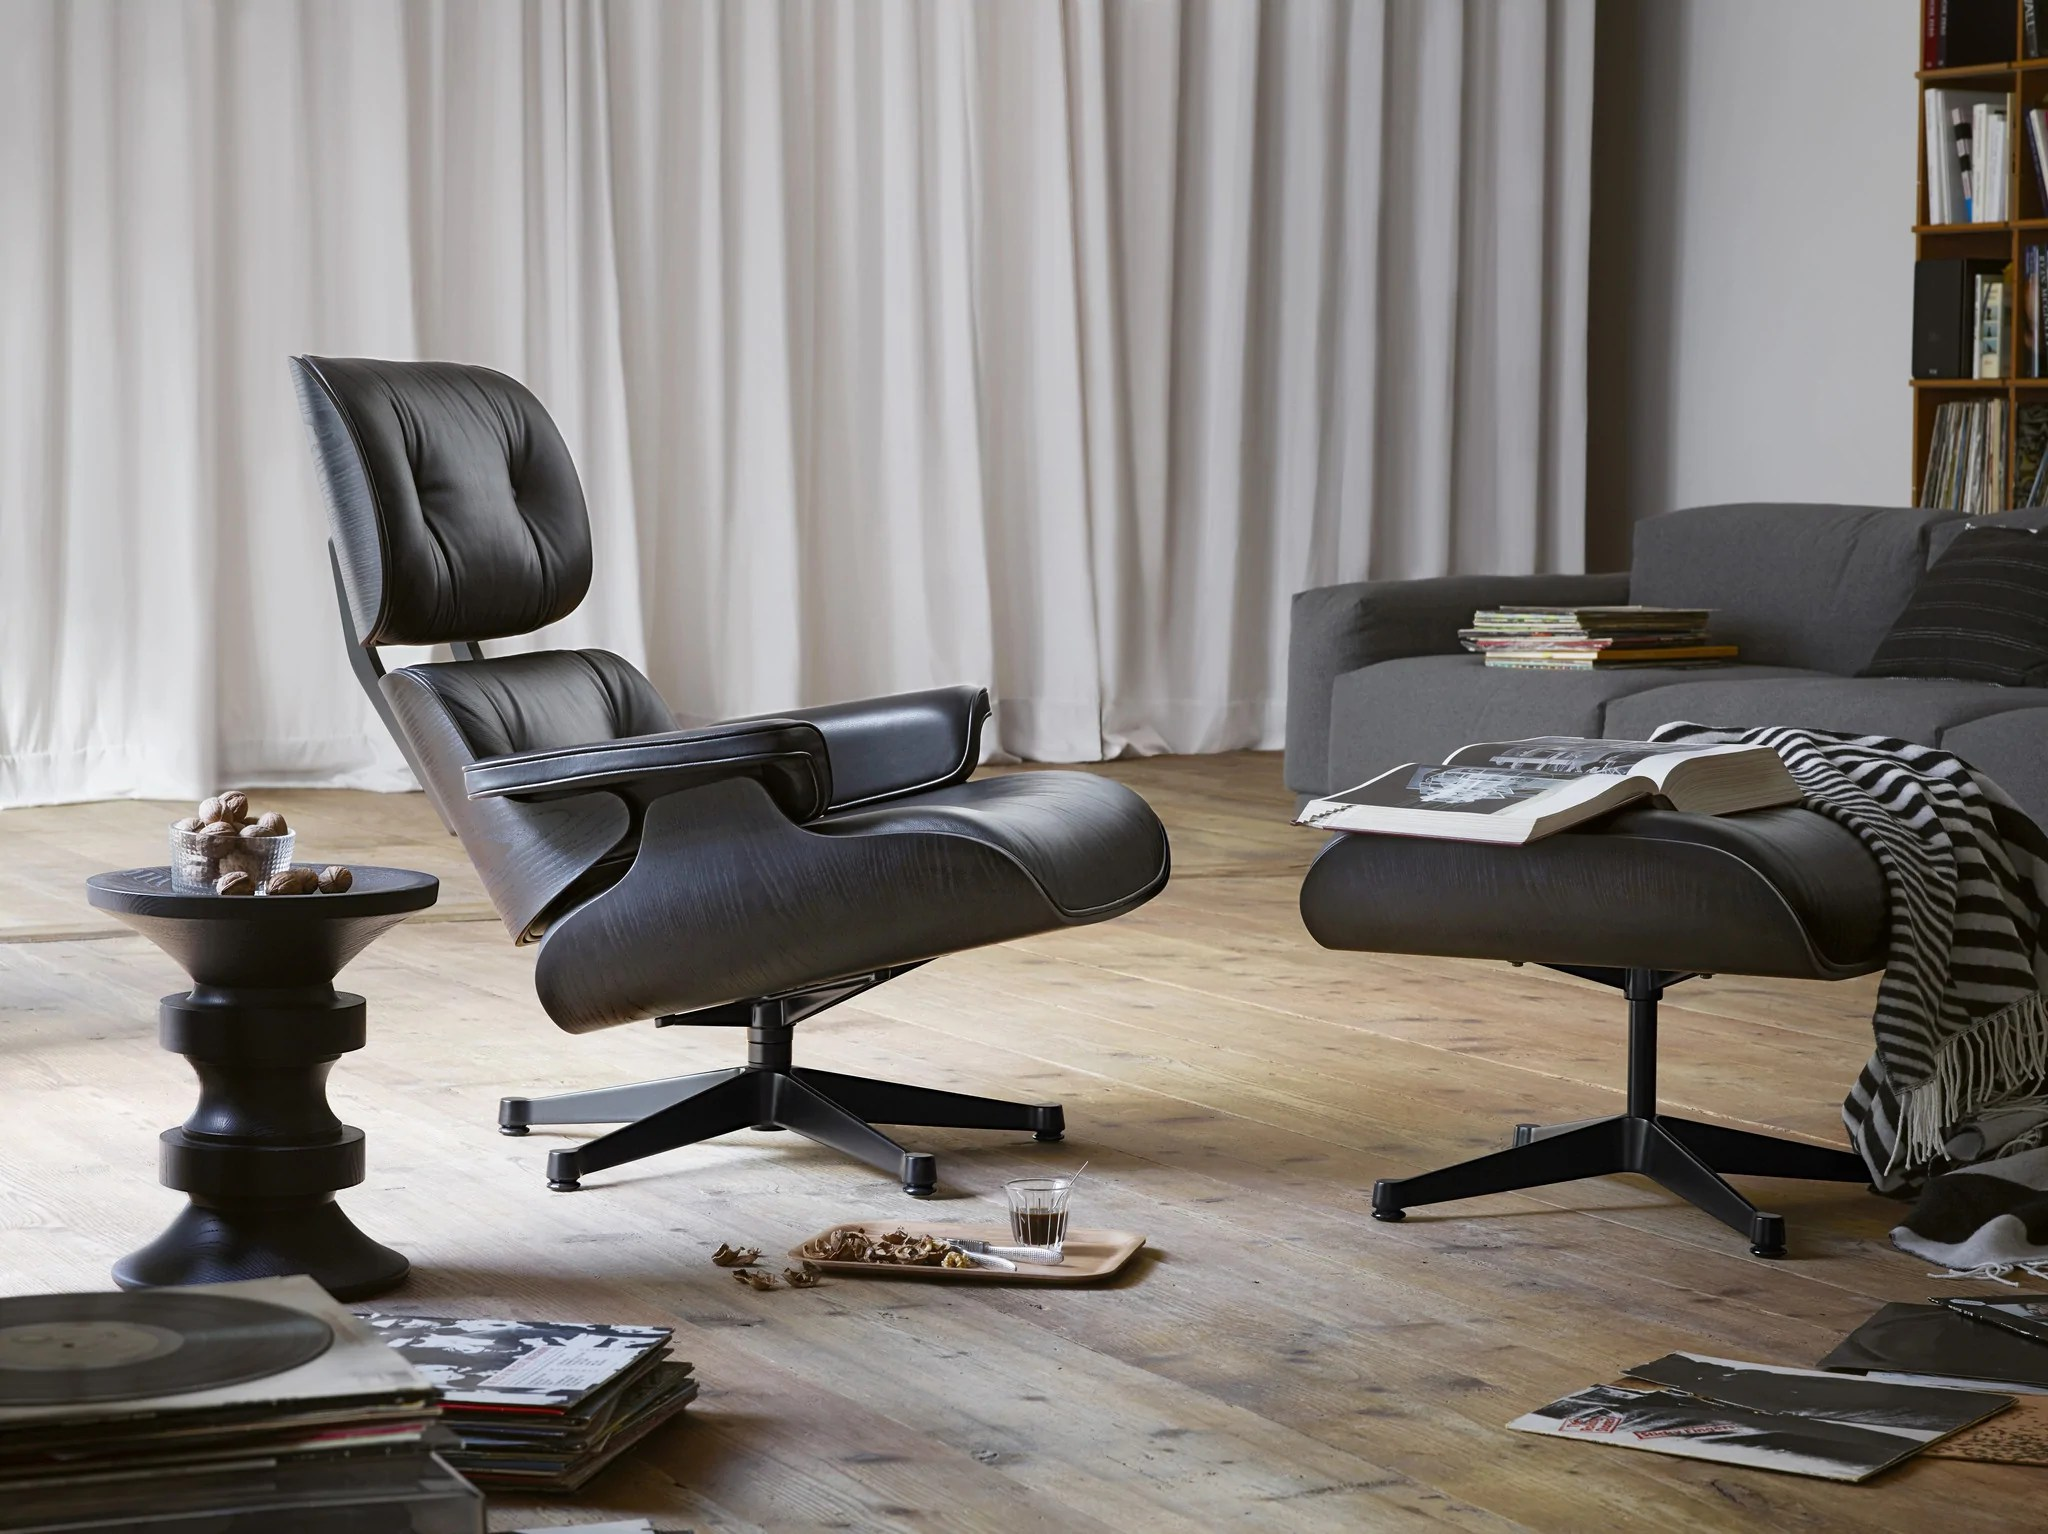 Vitra Eames Lounge Chair Black Eames Lounge Chair Black Version